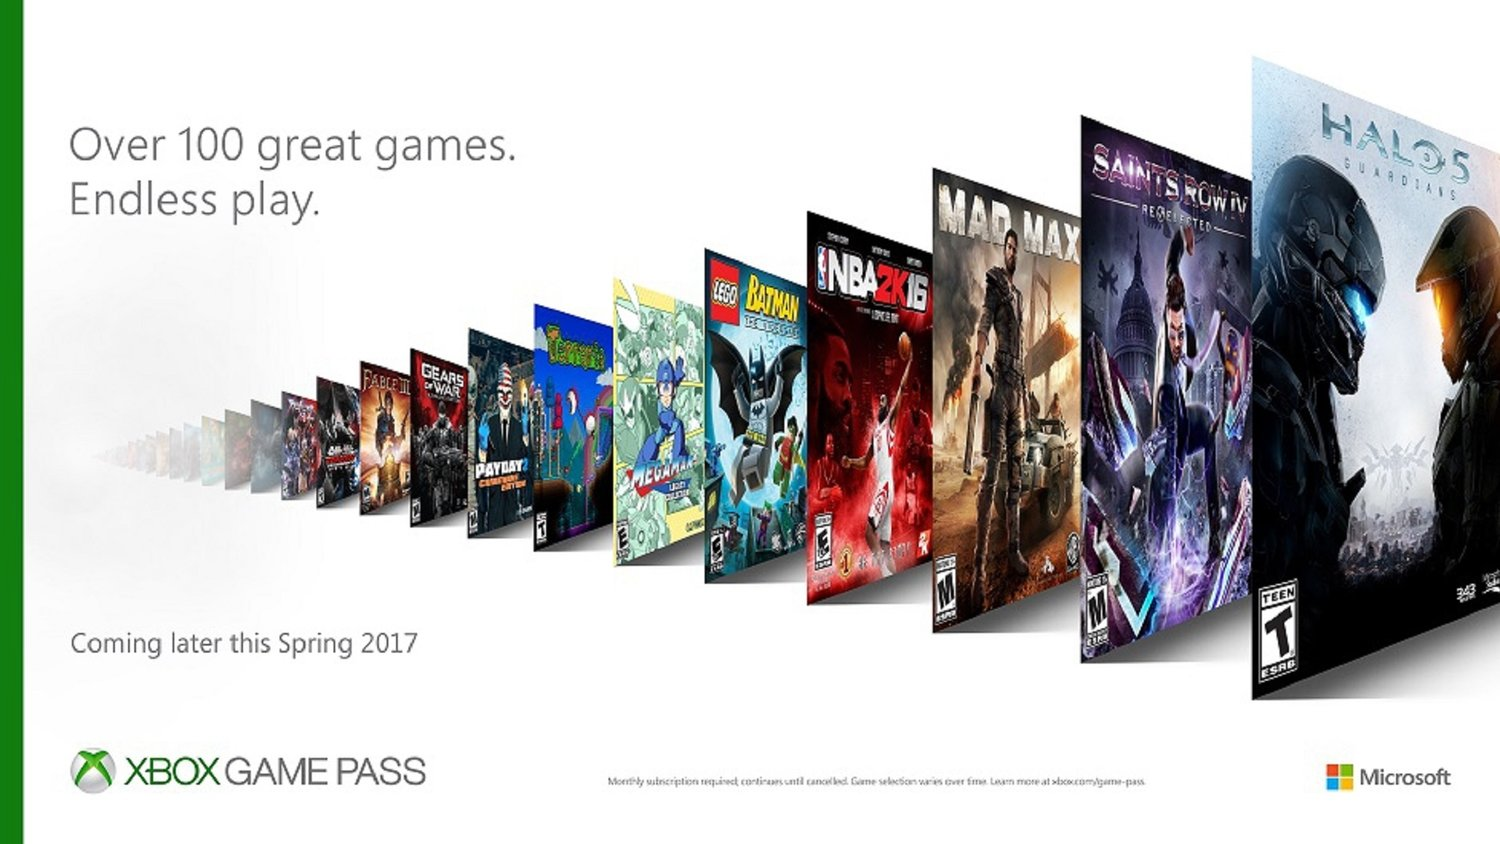 Xbox Unveils Xbox Game Pass Which Gives Access To 100 Games For Monthly Subscription